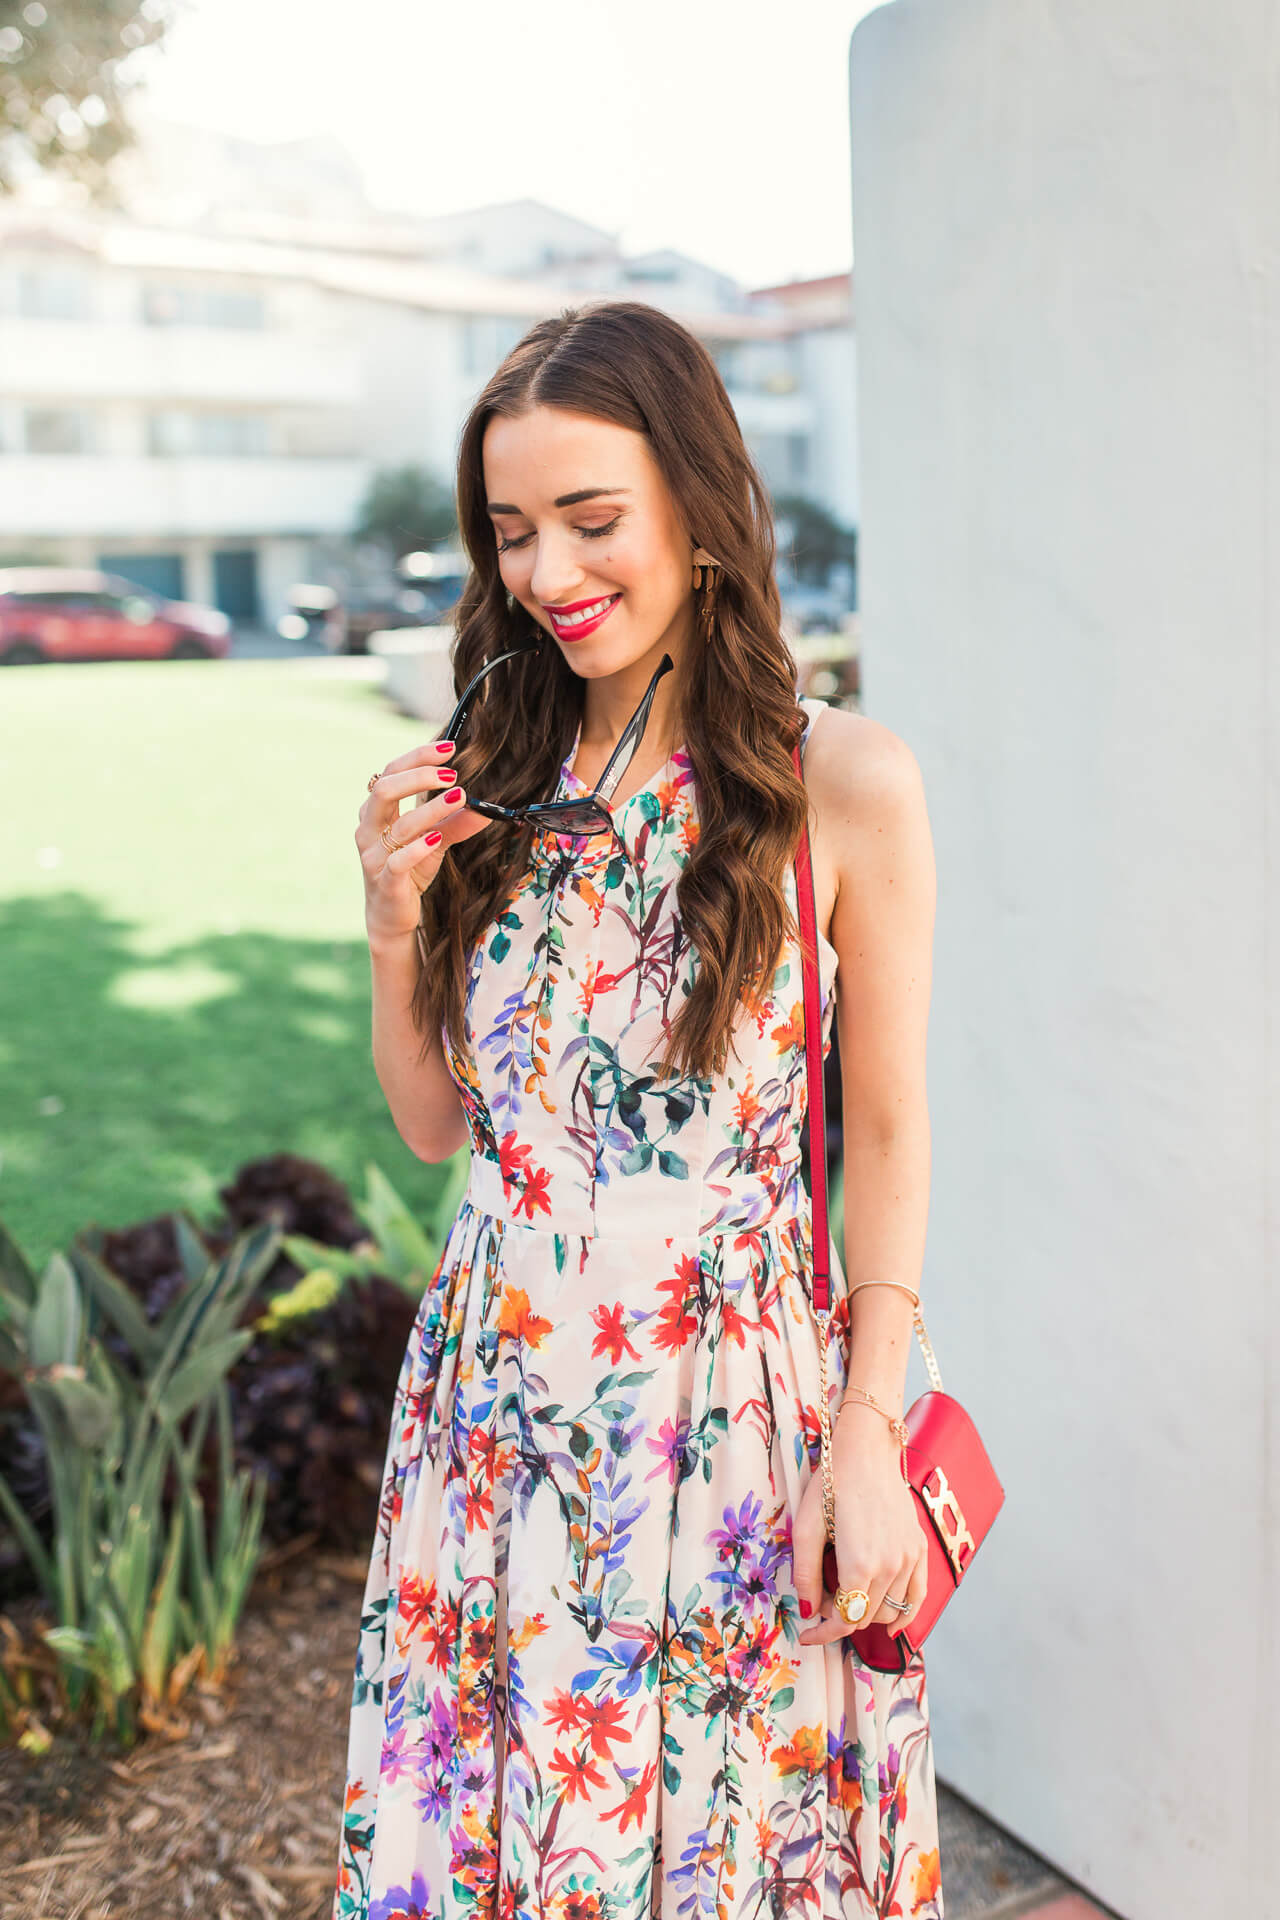 classic and feminine outfit idea for spring - M Loves M @marmar